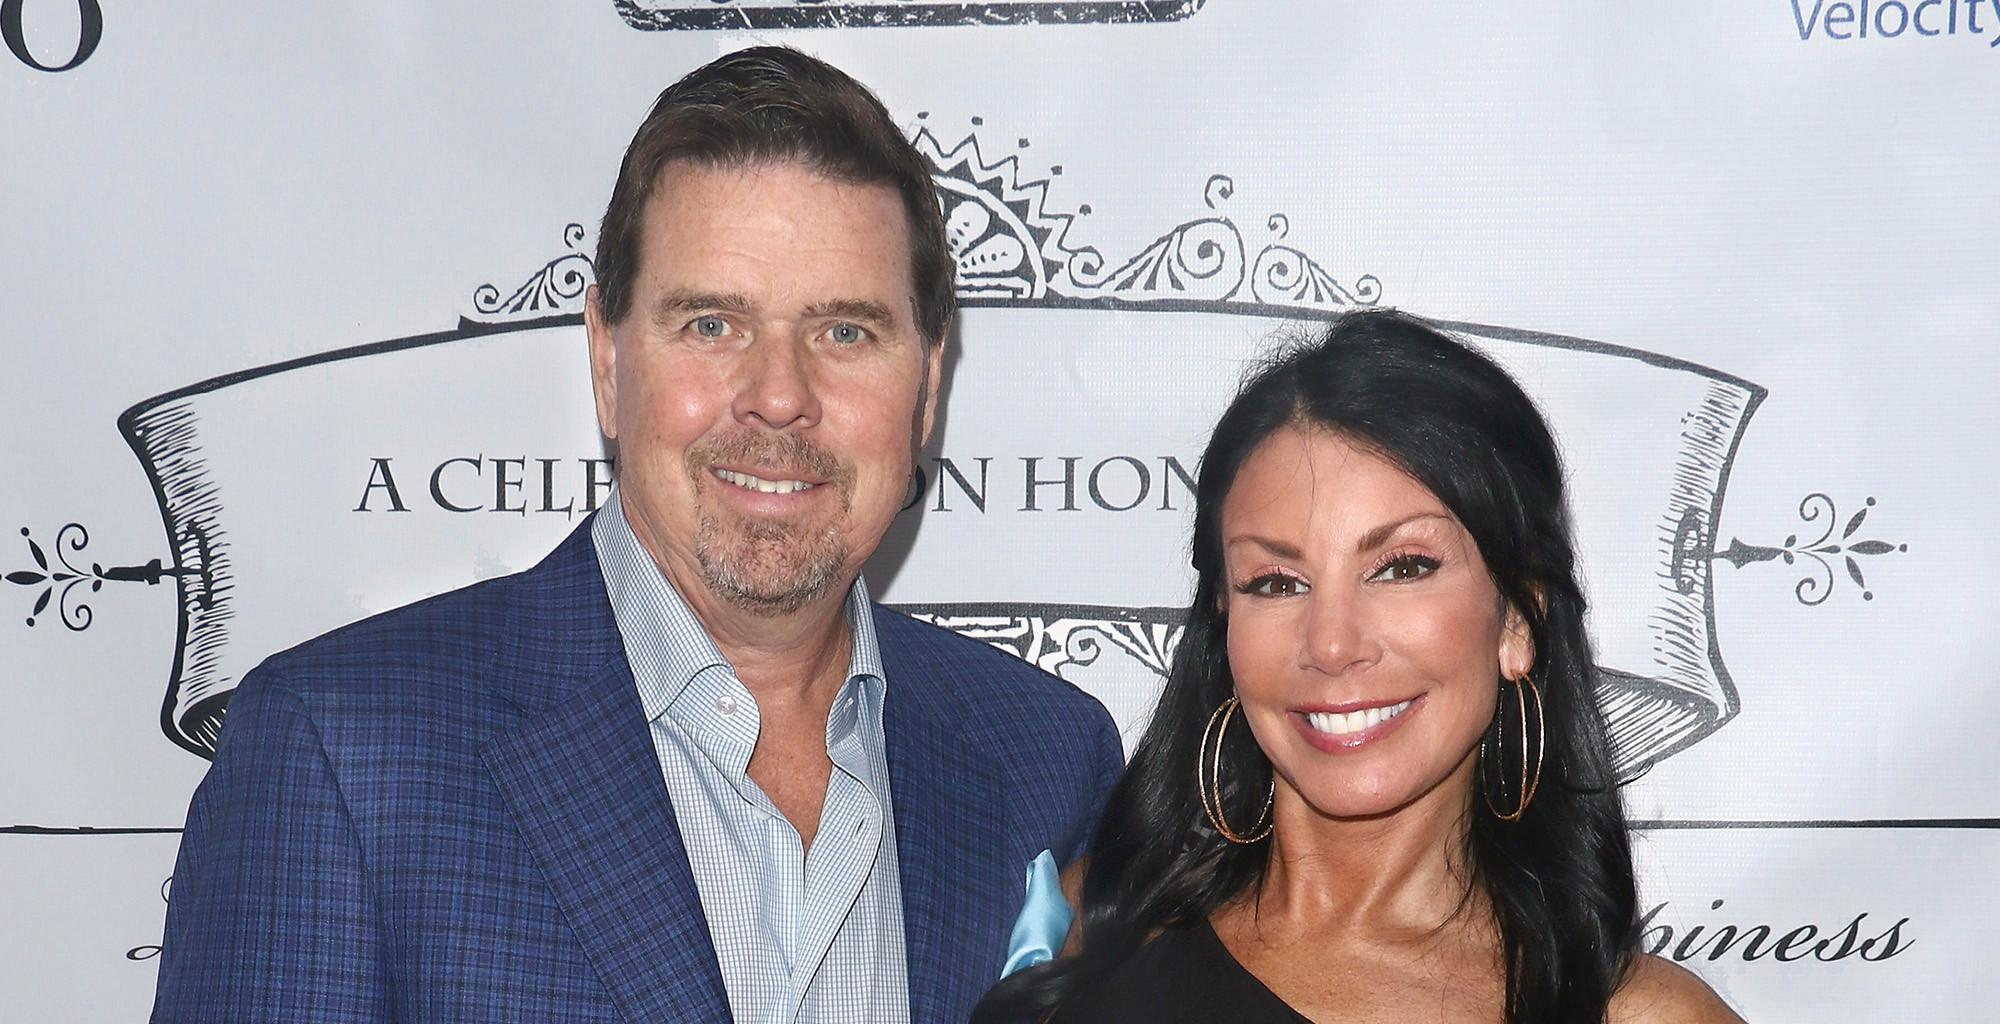 Danielle Staub And Marty Caffrey - New Documents Detail Shocking Verbal And Physical Abuse She Suffered!